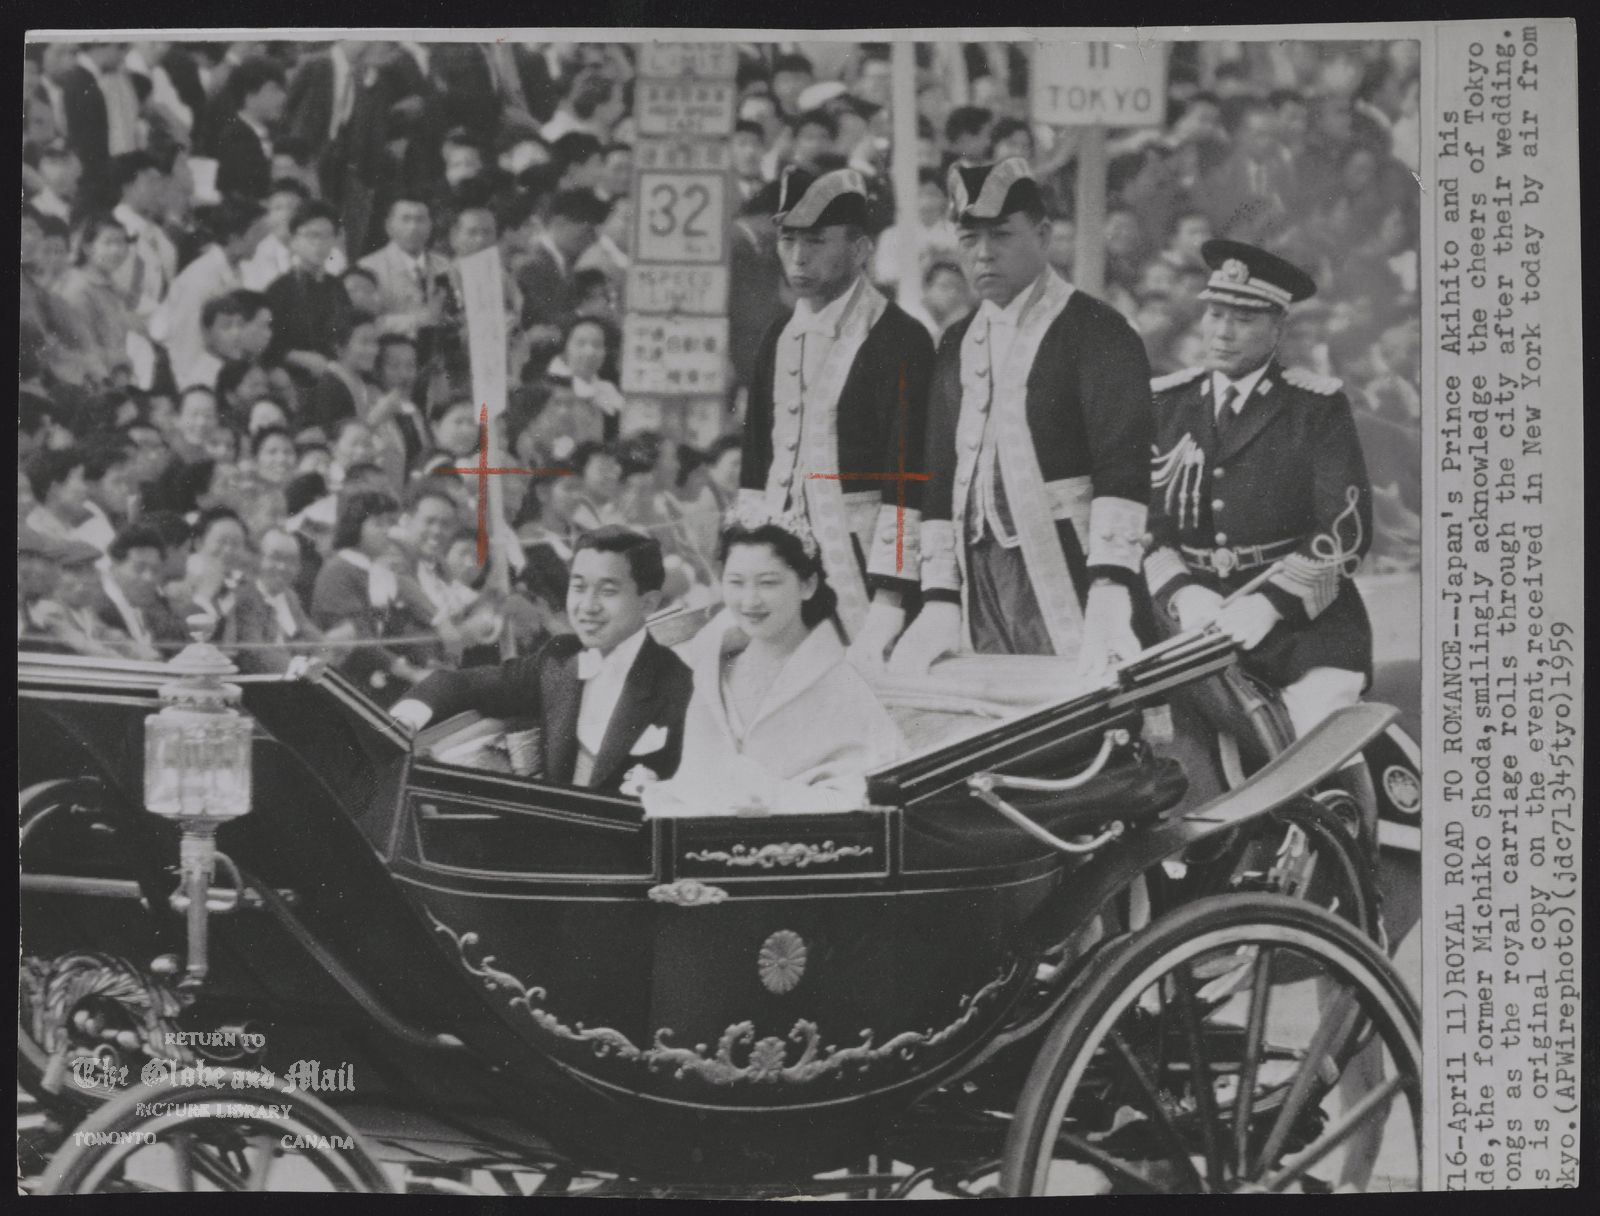 ROYAL FAMILY Japan Crown Prince Akihito. (April 11) ROYAL ROAD TO ROMANCE --- Japan's Prince Akihito and his bride, the former Michiko Shoda, smilingly acknowledge the cheers of Tokyo throngs as the royal carriage rolls through the city after their wedding. This is original copy on the event, received in New York today by air from Tokyo. (AP Wirephoto) (jdc71345tyo) 1959